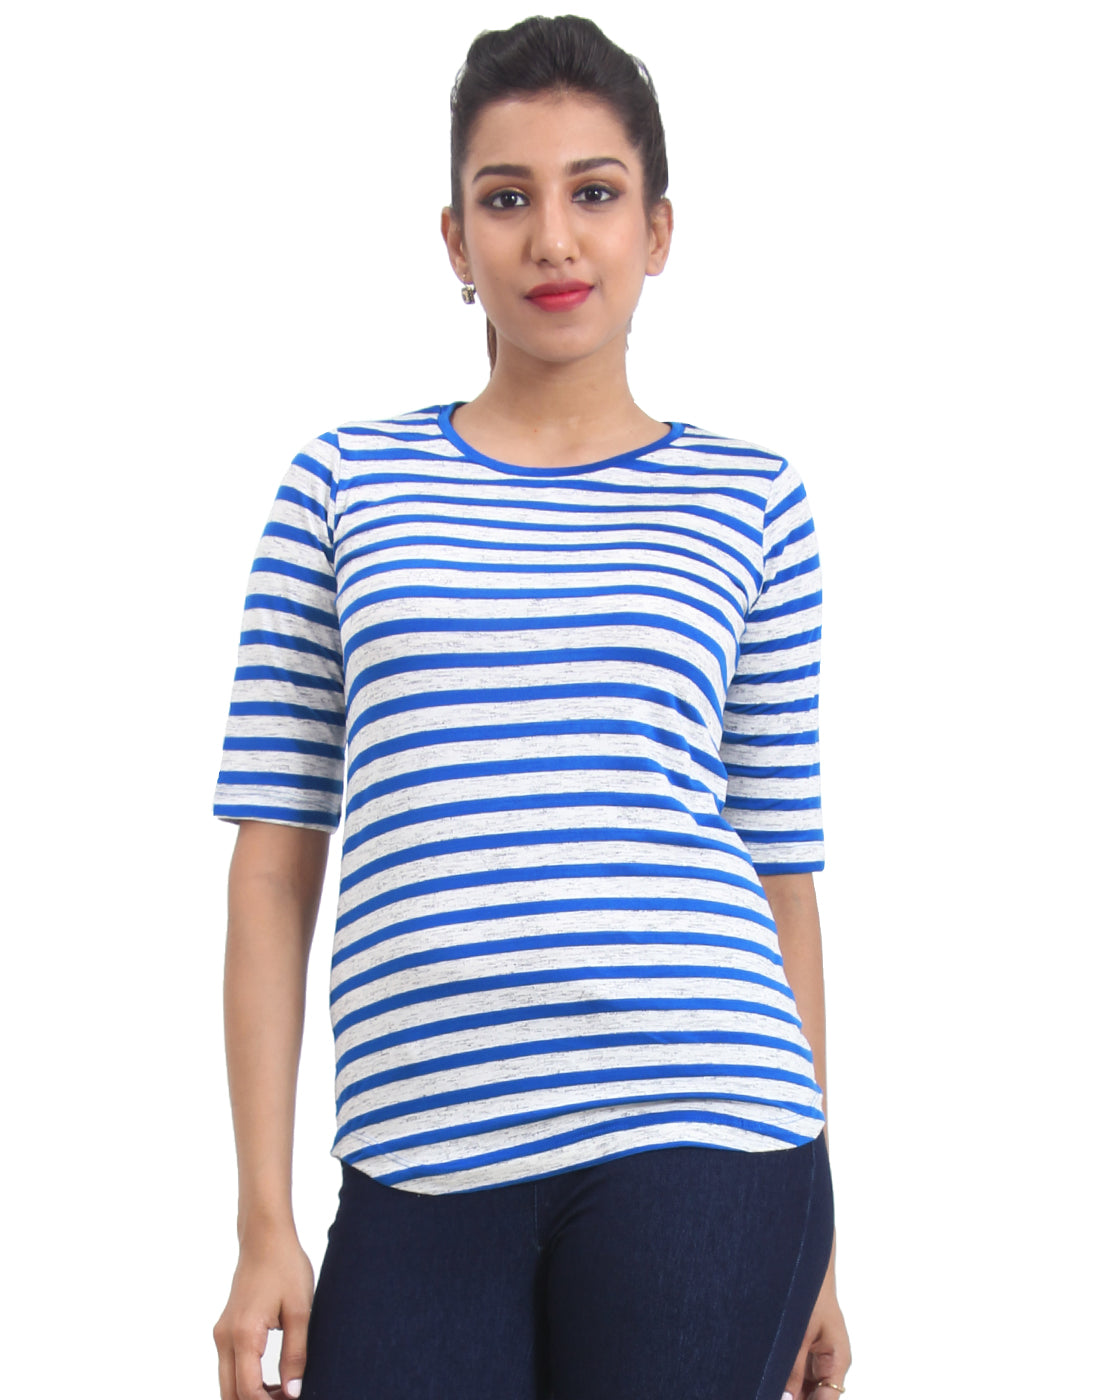 Blue Striped Knitted Women's T-shirt